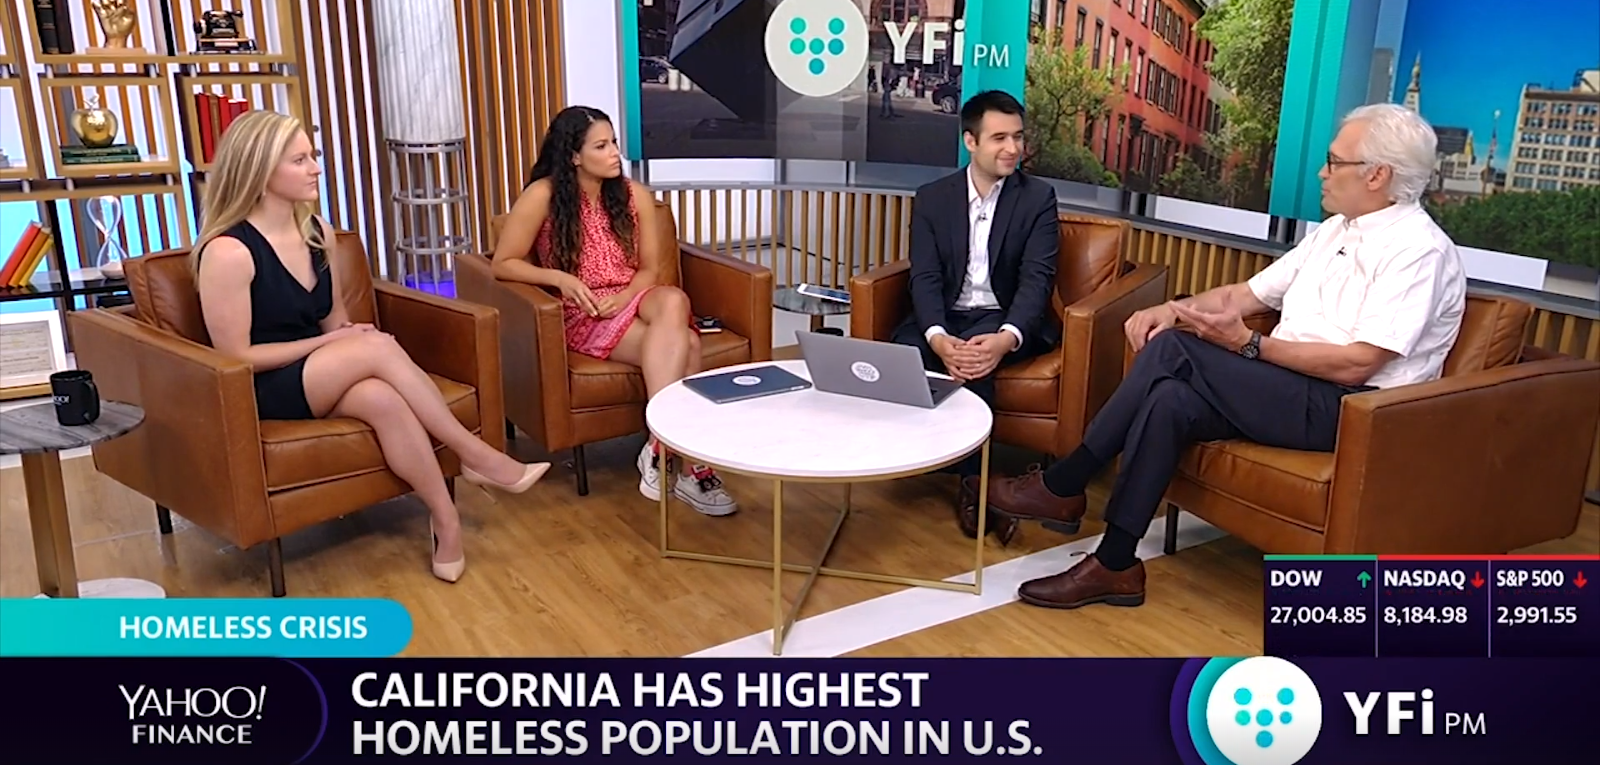 HELP USA President And CEO Tom Hameline On Yahoo! News